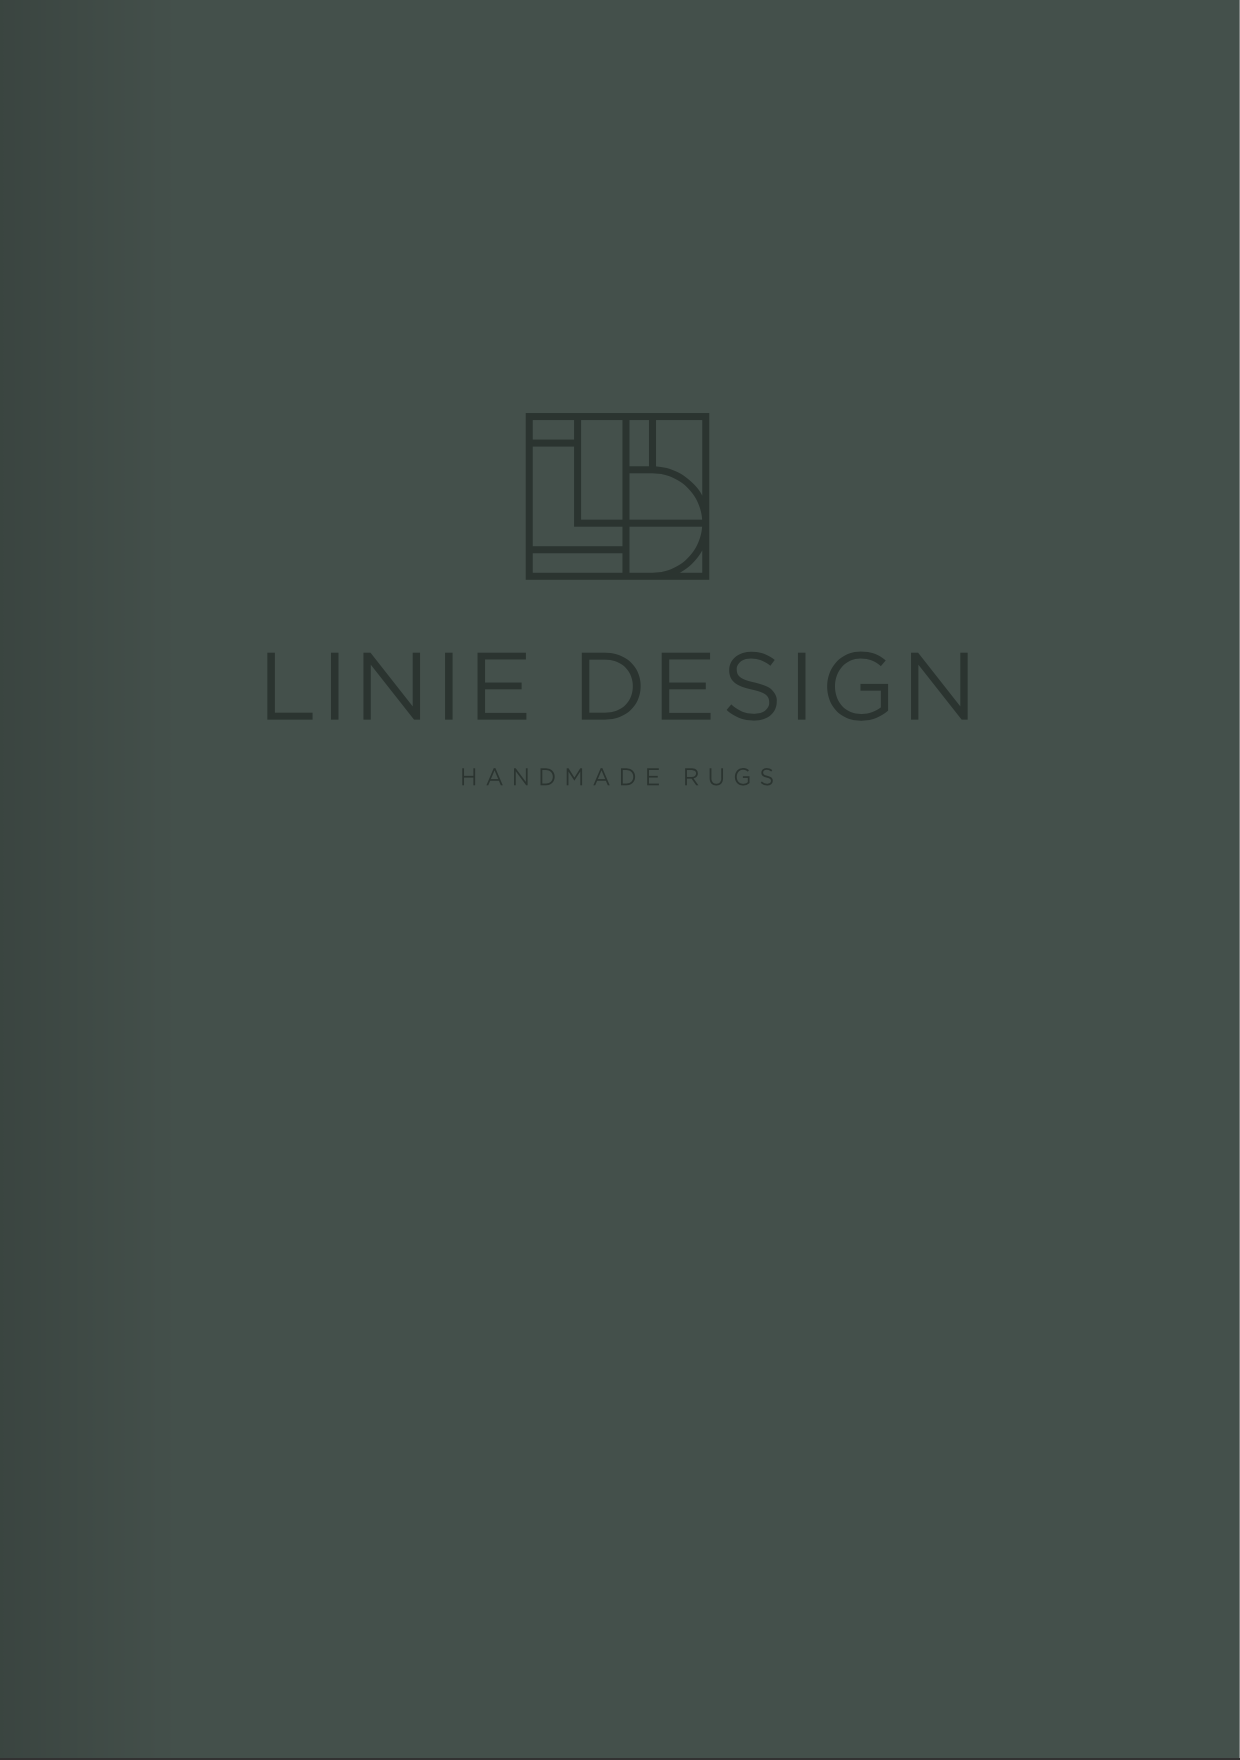 linie-design-essentials-cover.png